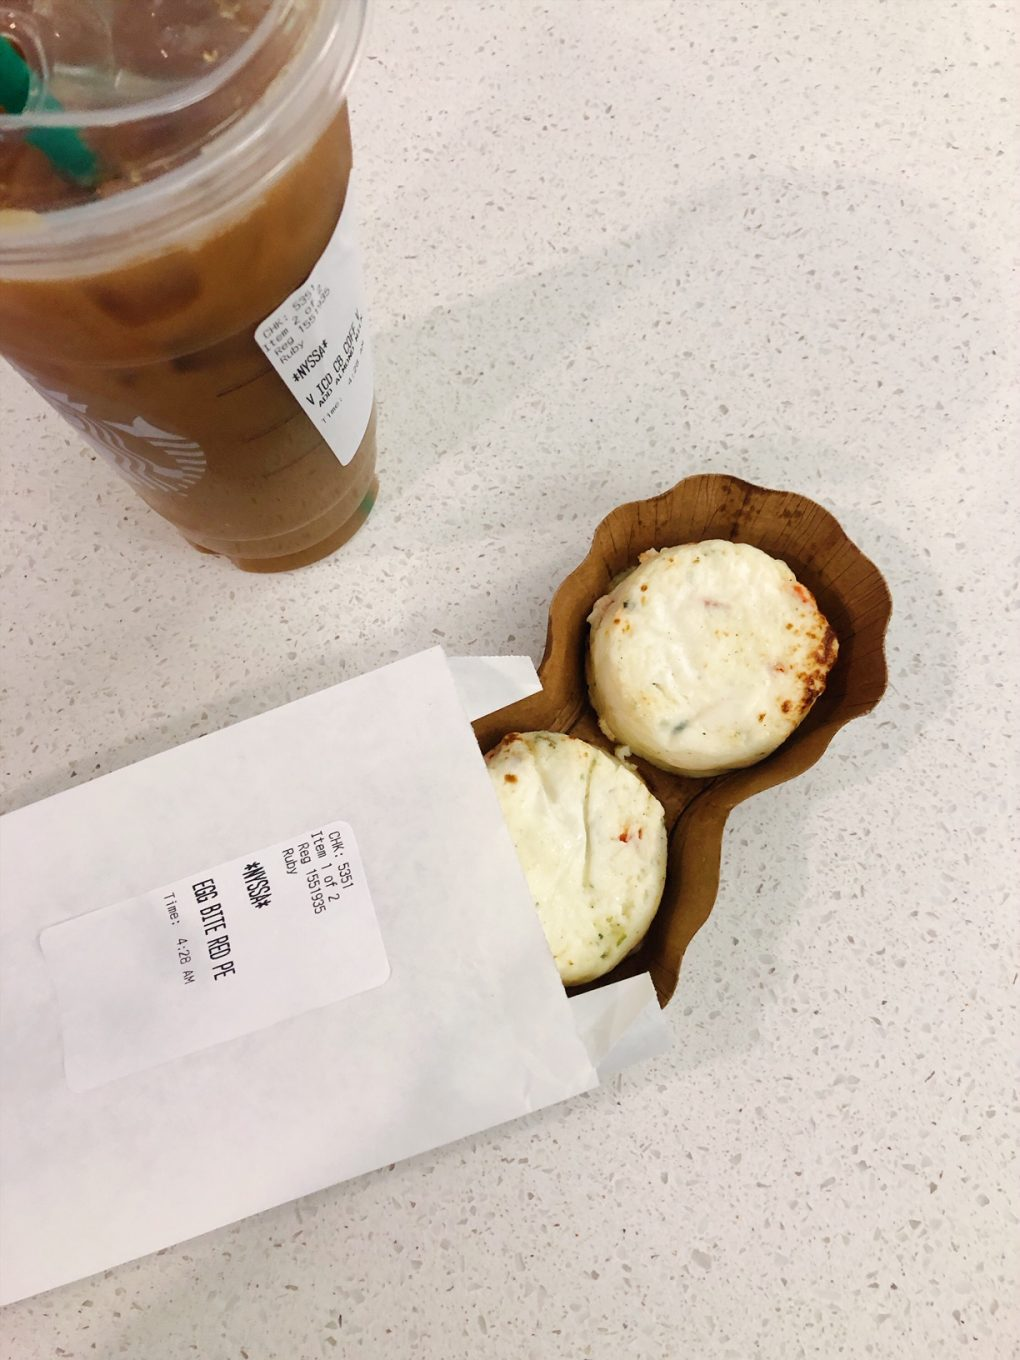 Starbucks sous vide egg white bites partially out of the package on a white background next to a venti iced coffee